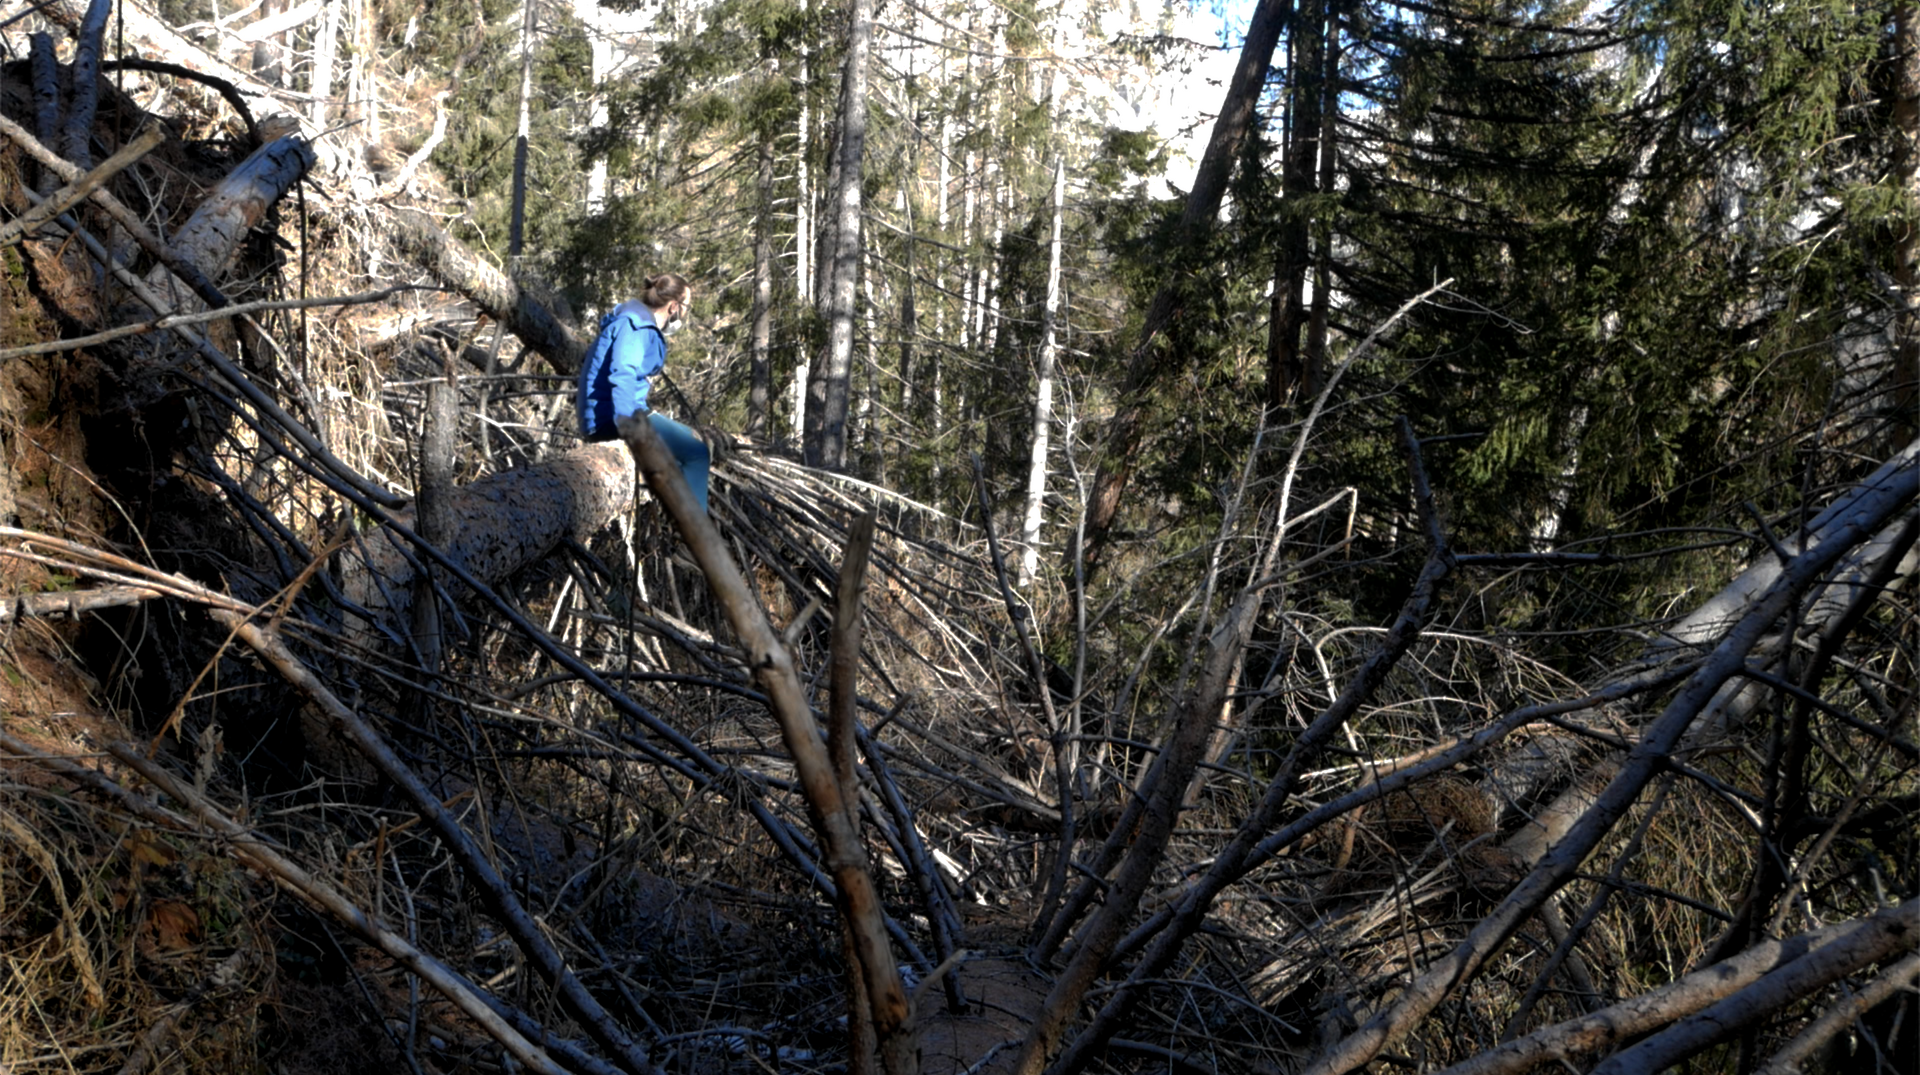 Exploring the felled forest